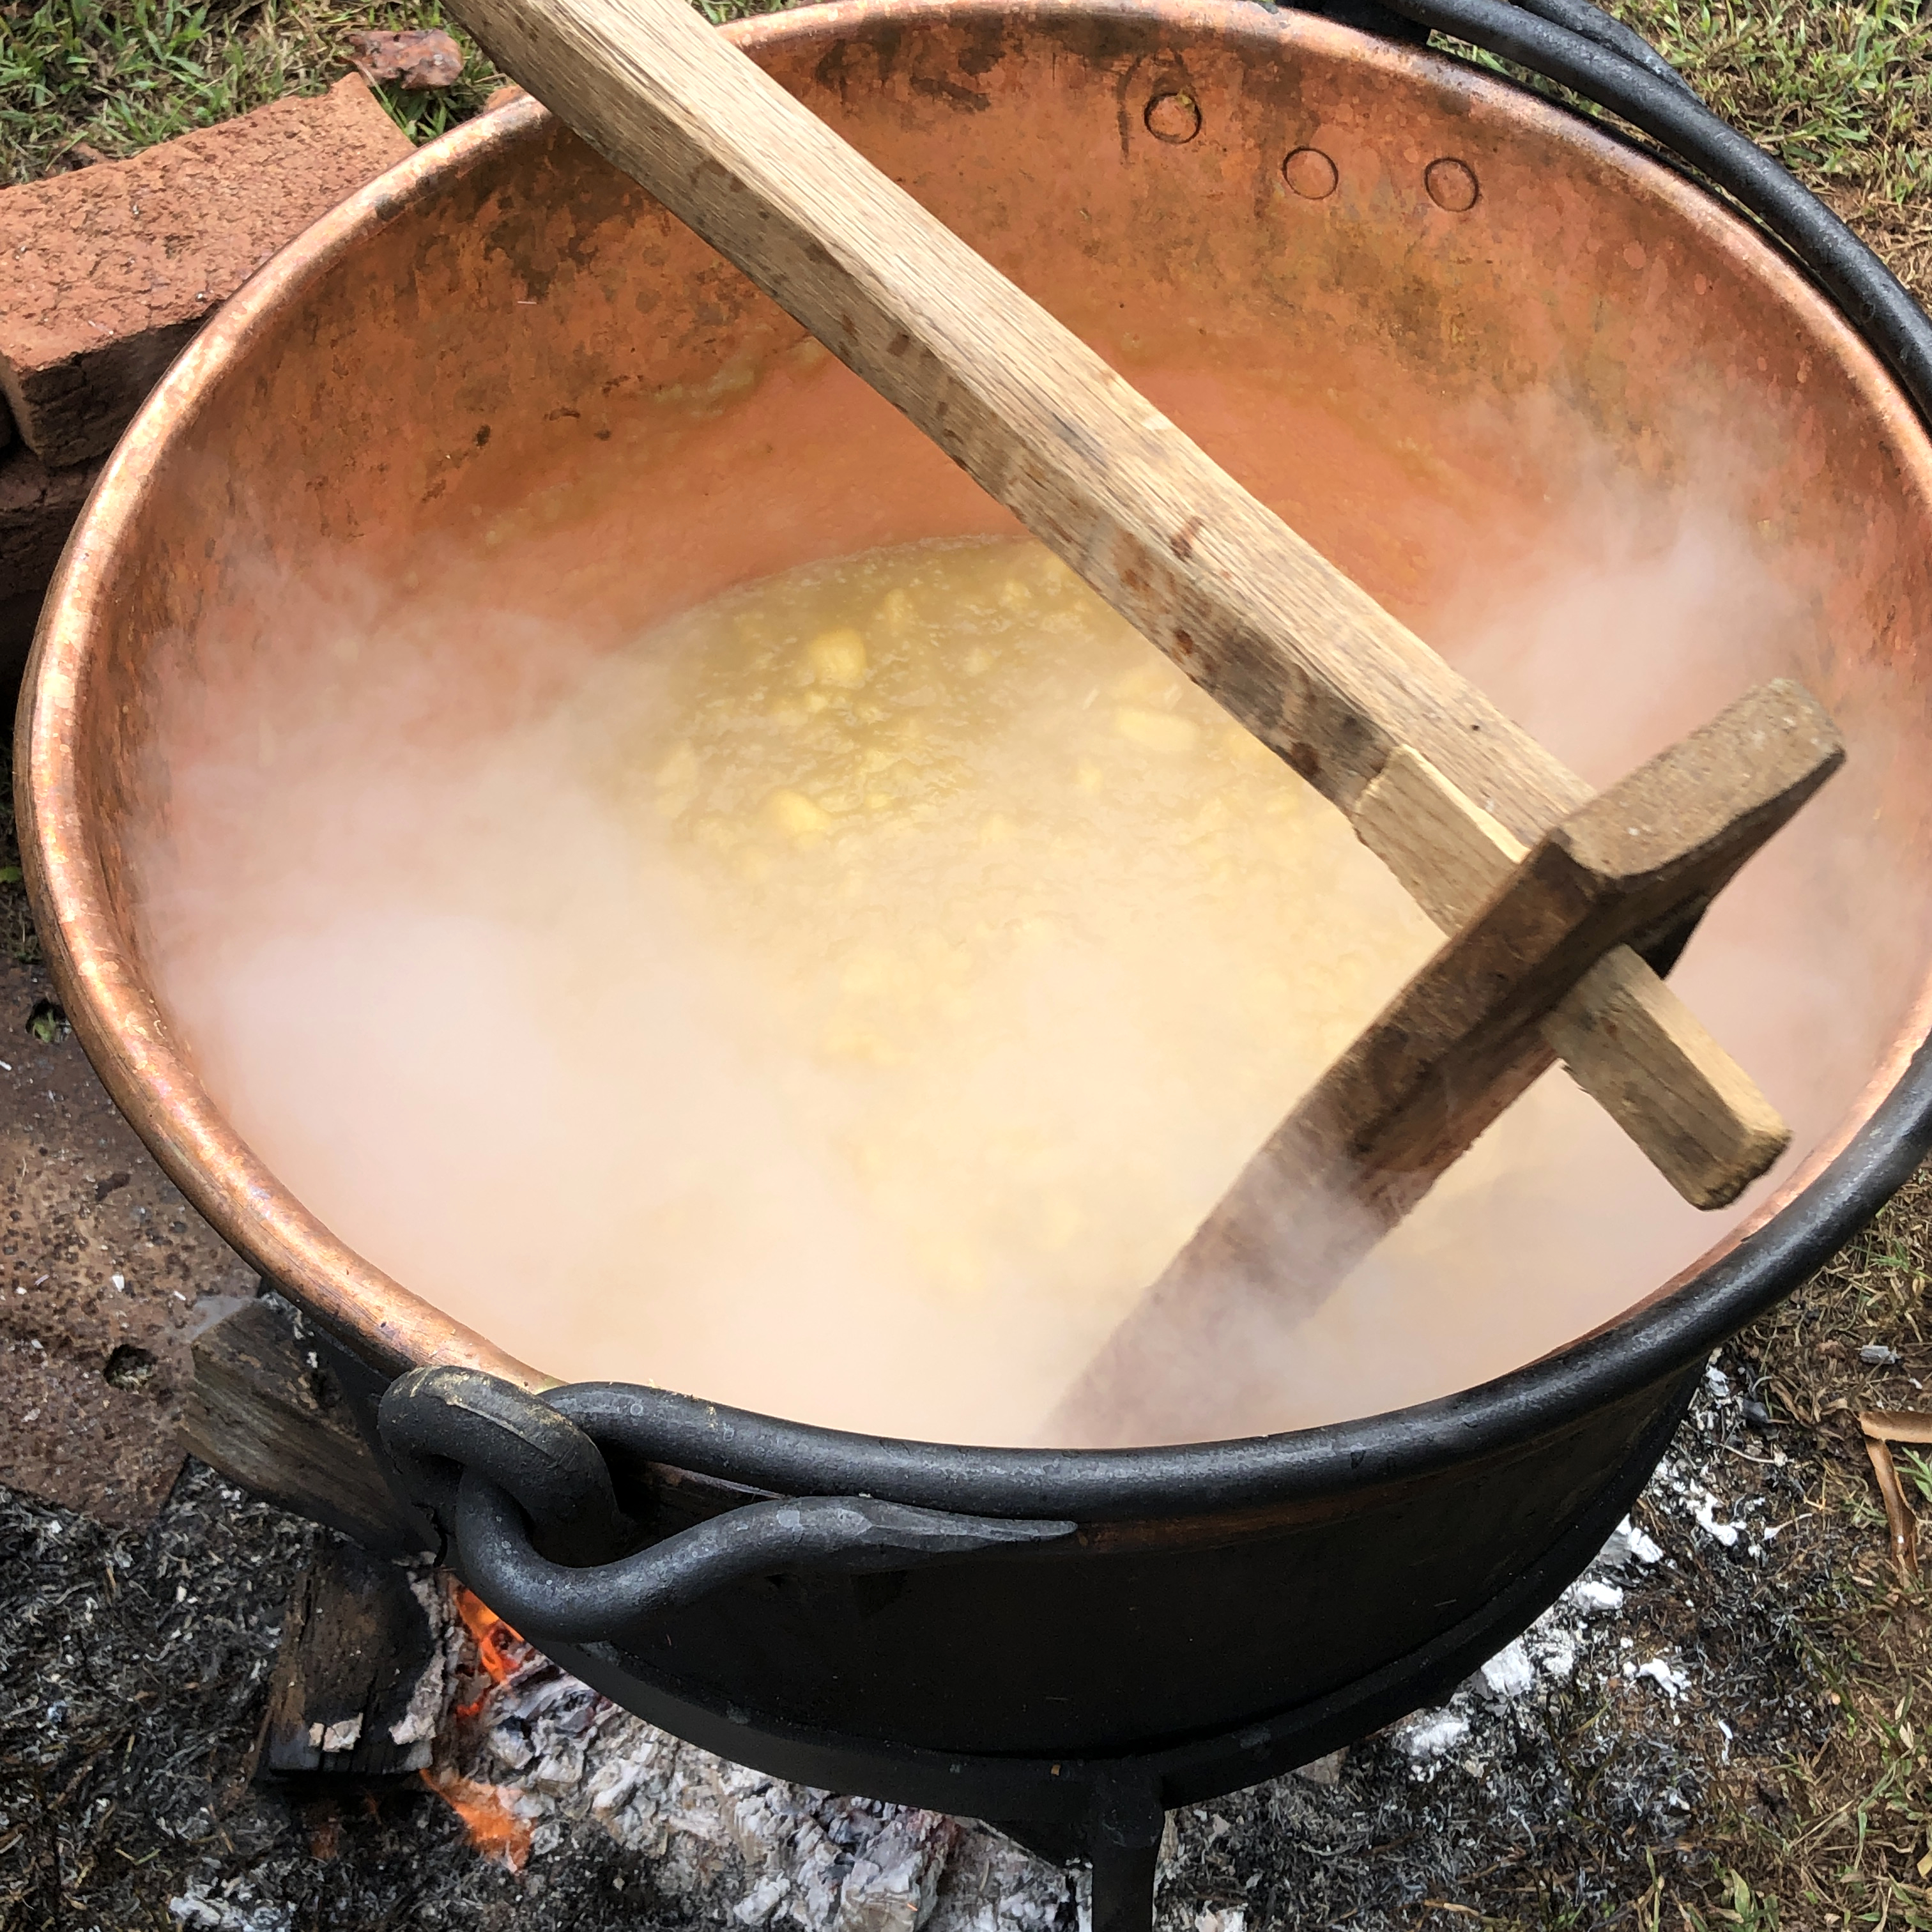 a large copper cauldron filled with apple butter being stirred with a wooden paddle